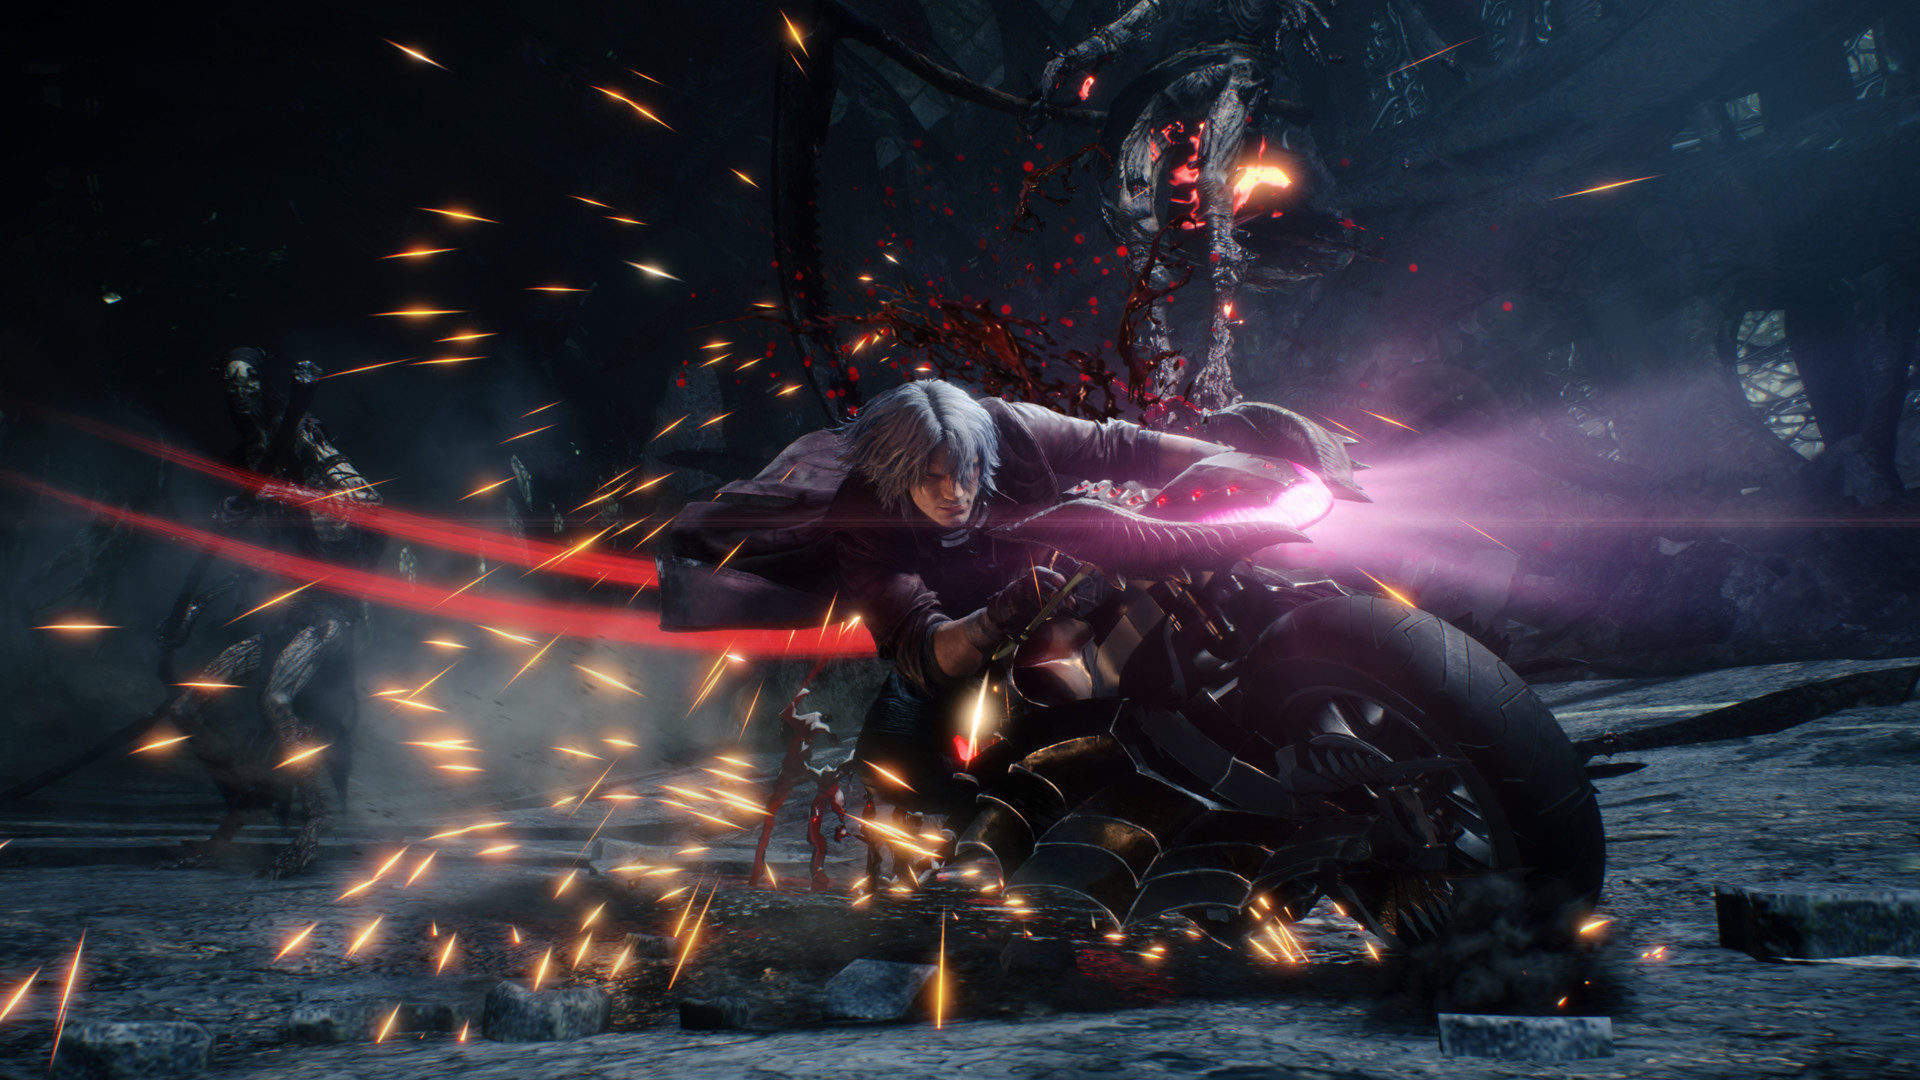 Devil May Cry 5 Desktop Wallpapers 3 Computer Background Images